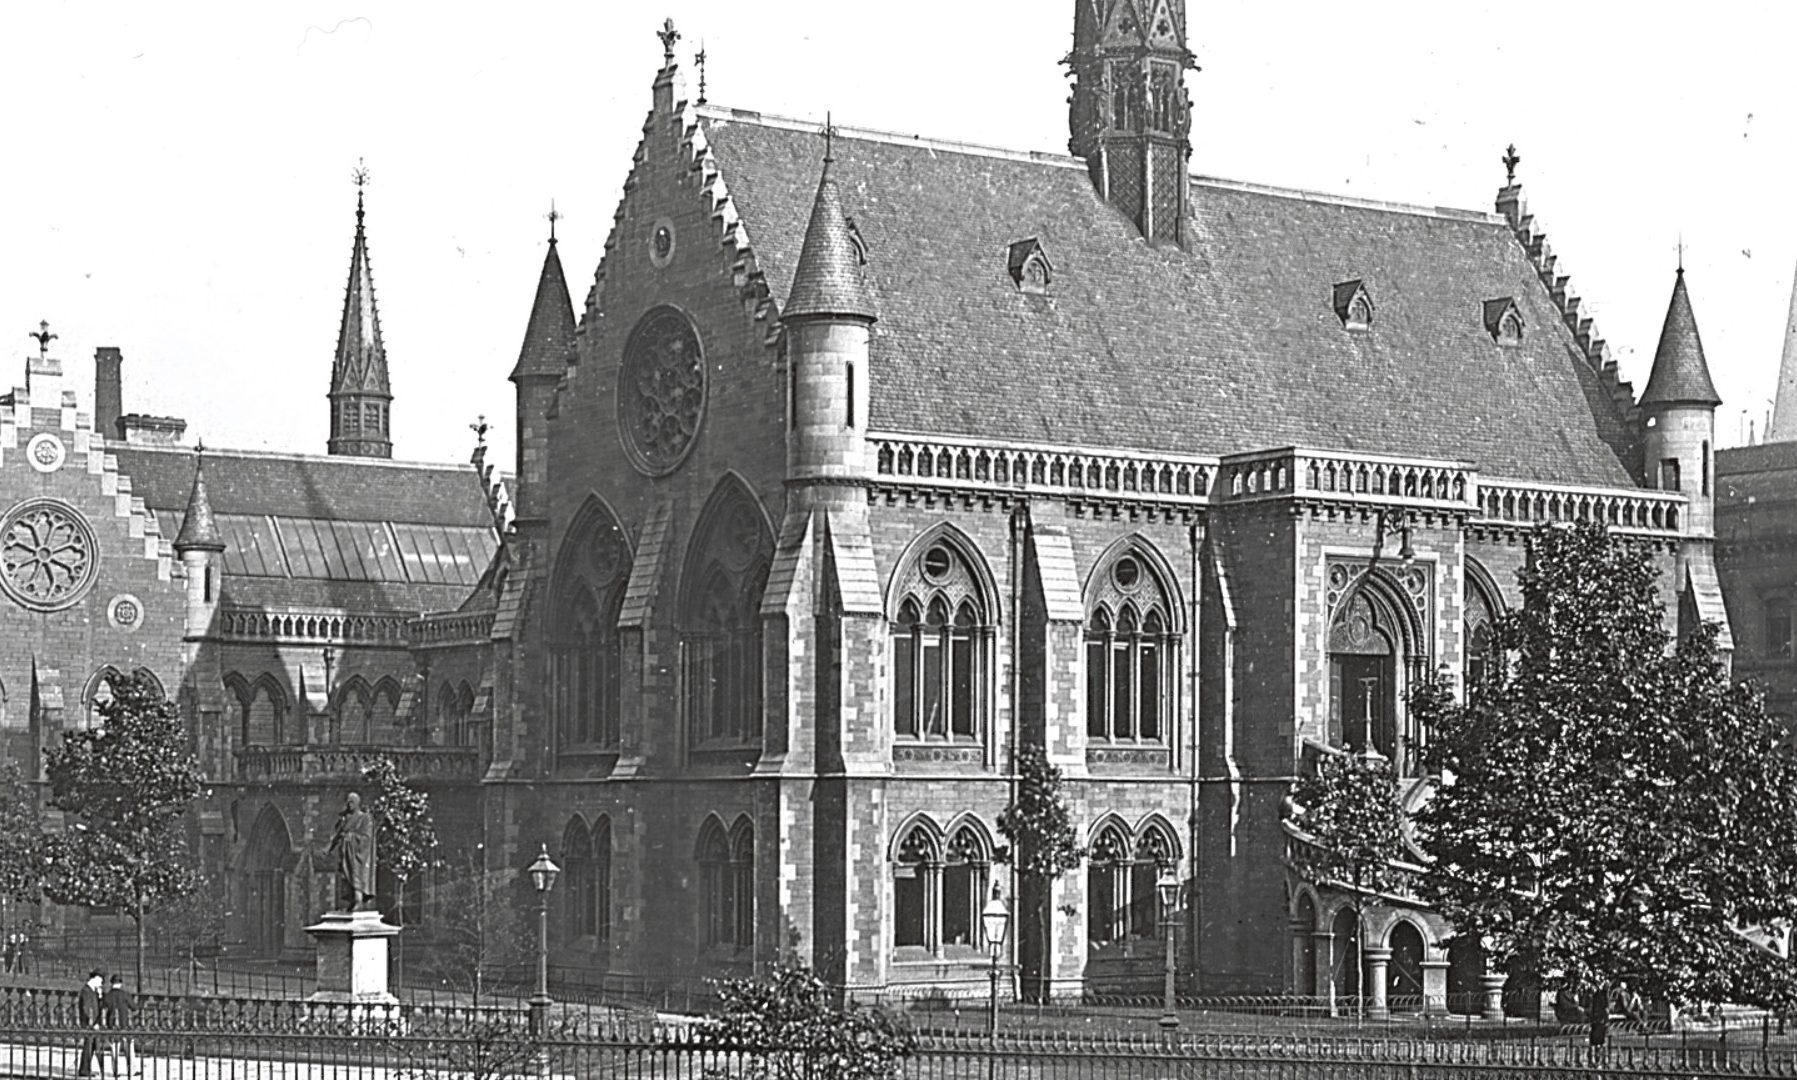 The iconic building opened as the Albert Institute in 1867